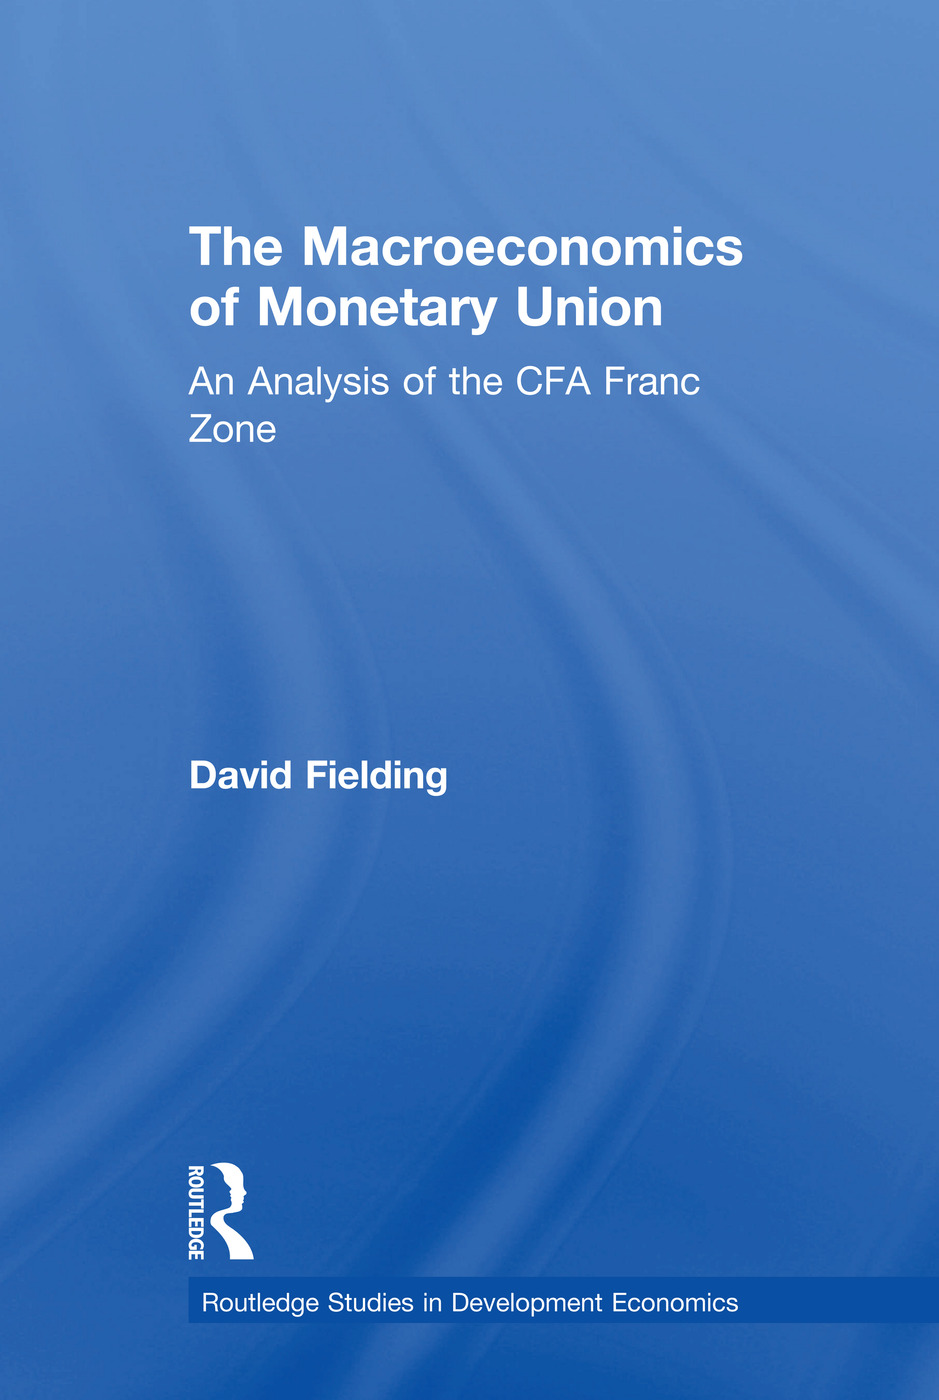 CFA membership and the role of relative price stability in investment performance